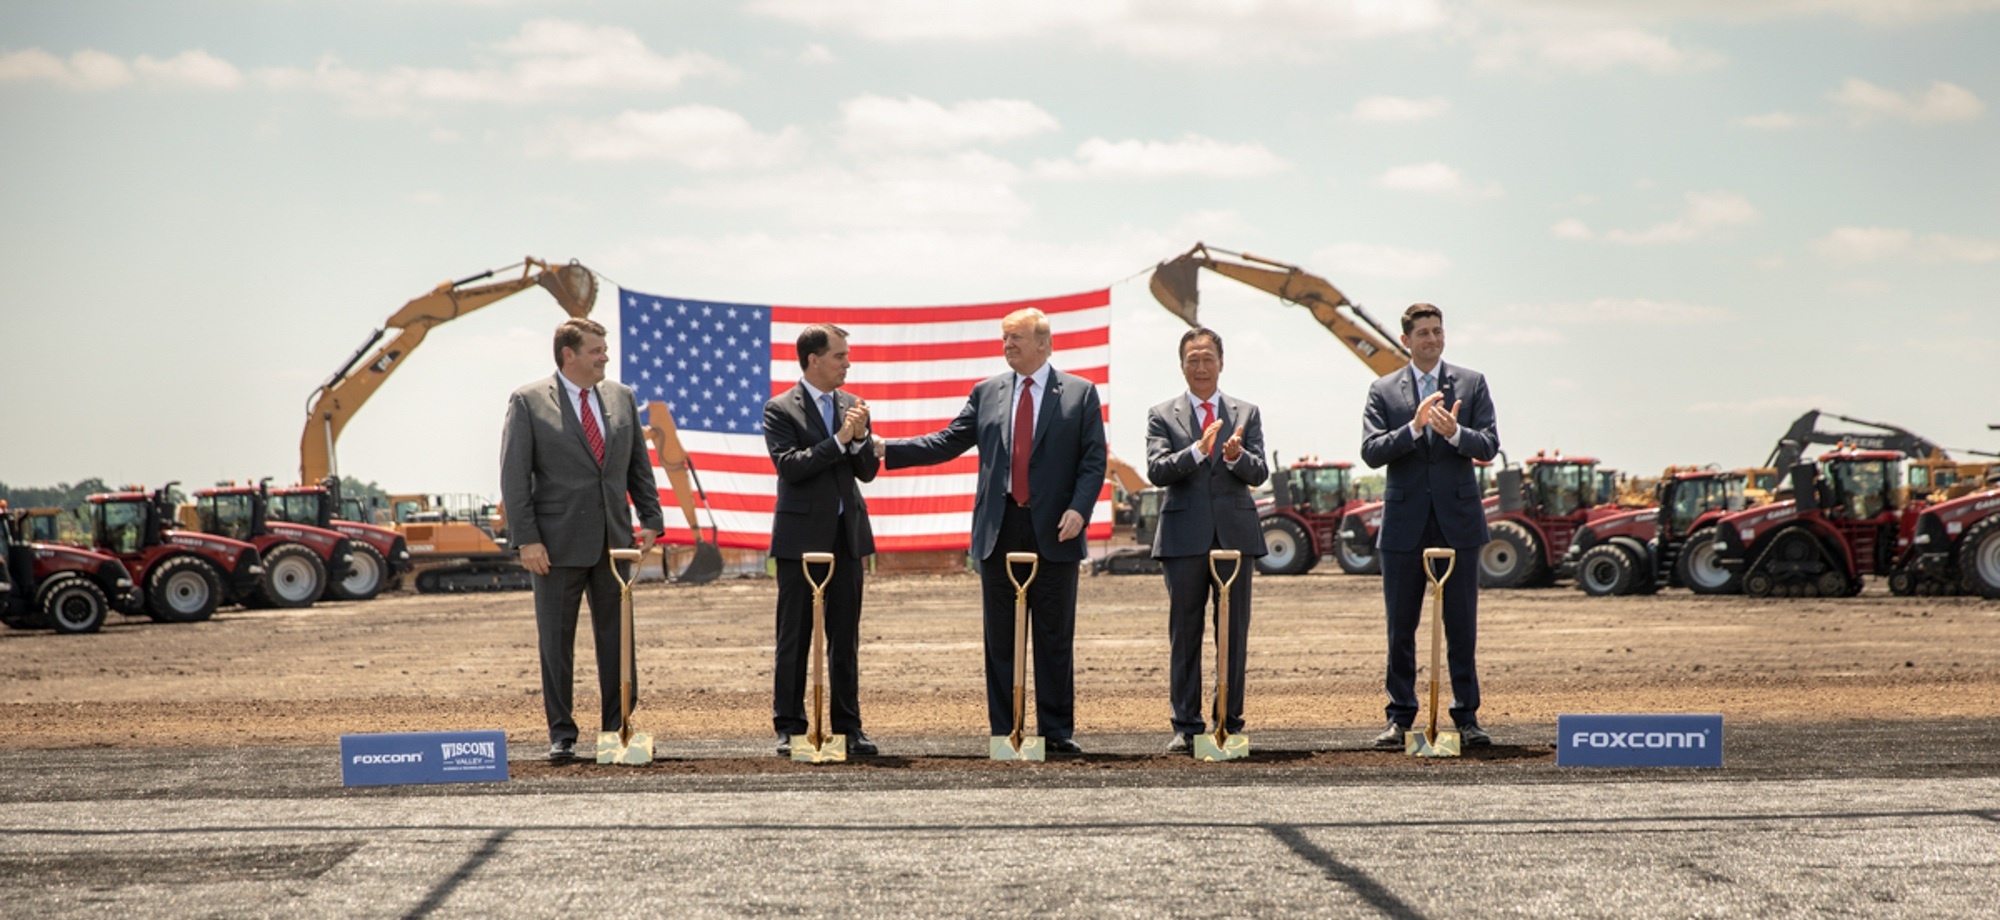 Speaker Paul Ryan, President Donald Trump, Wisconsin Governor Scott Walker, Foxconn Founder and CEO Terry Gou and Christopher Murdock at Foxconn's groundbreaking ceremony in Wisconsin ( Shealah Craighead )